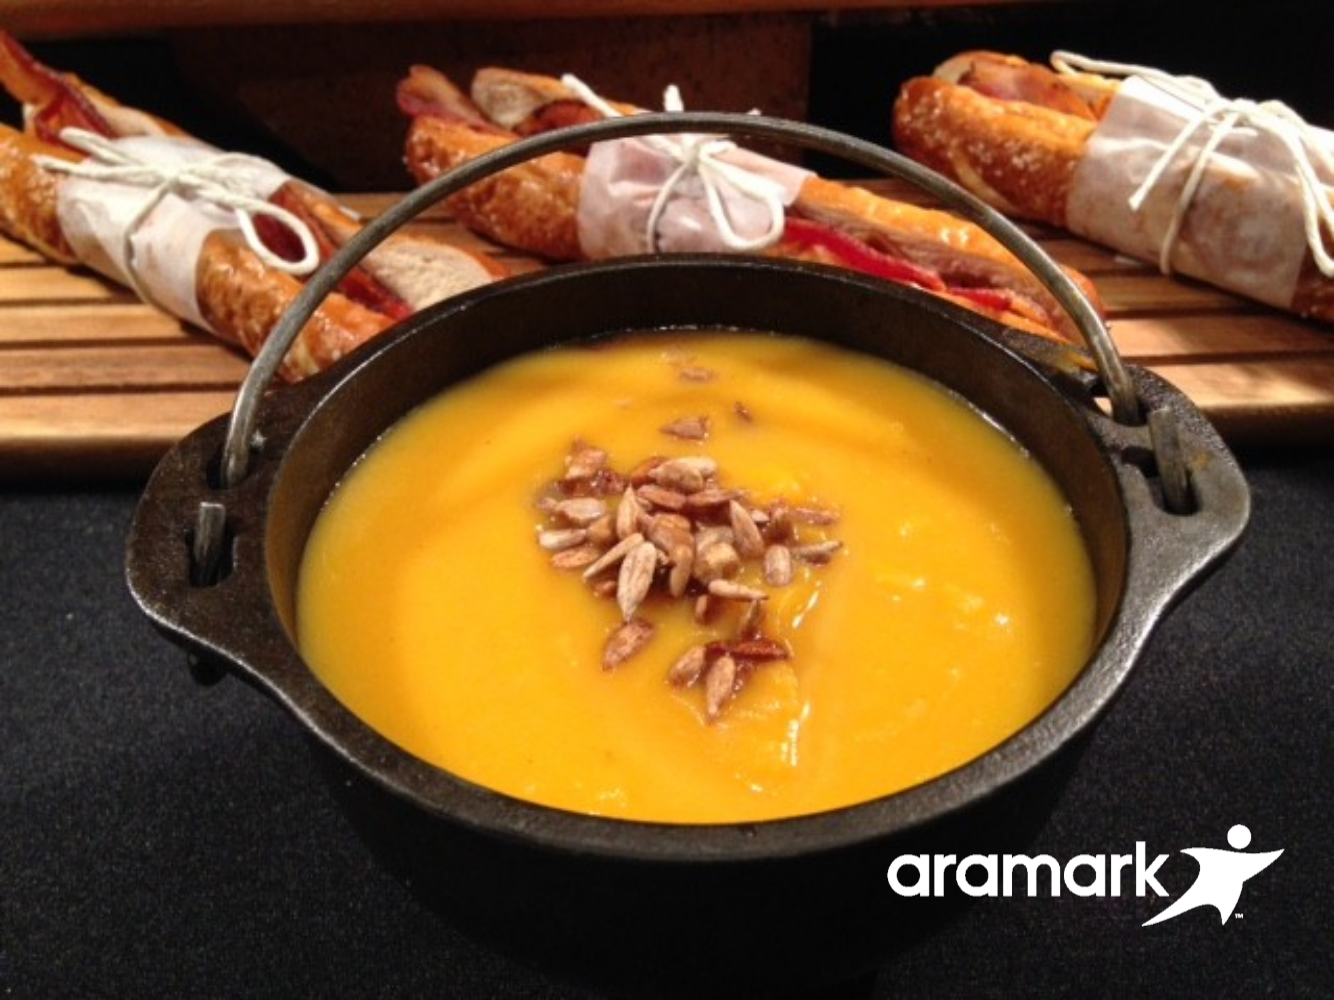 If the weather turns cold this butternut squash bisque will warm you up (Aramark Sports)